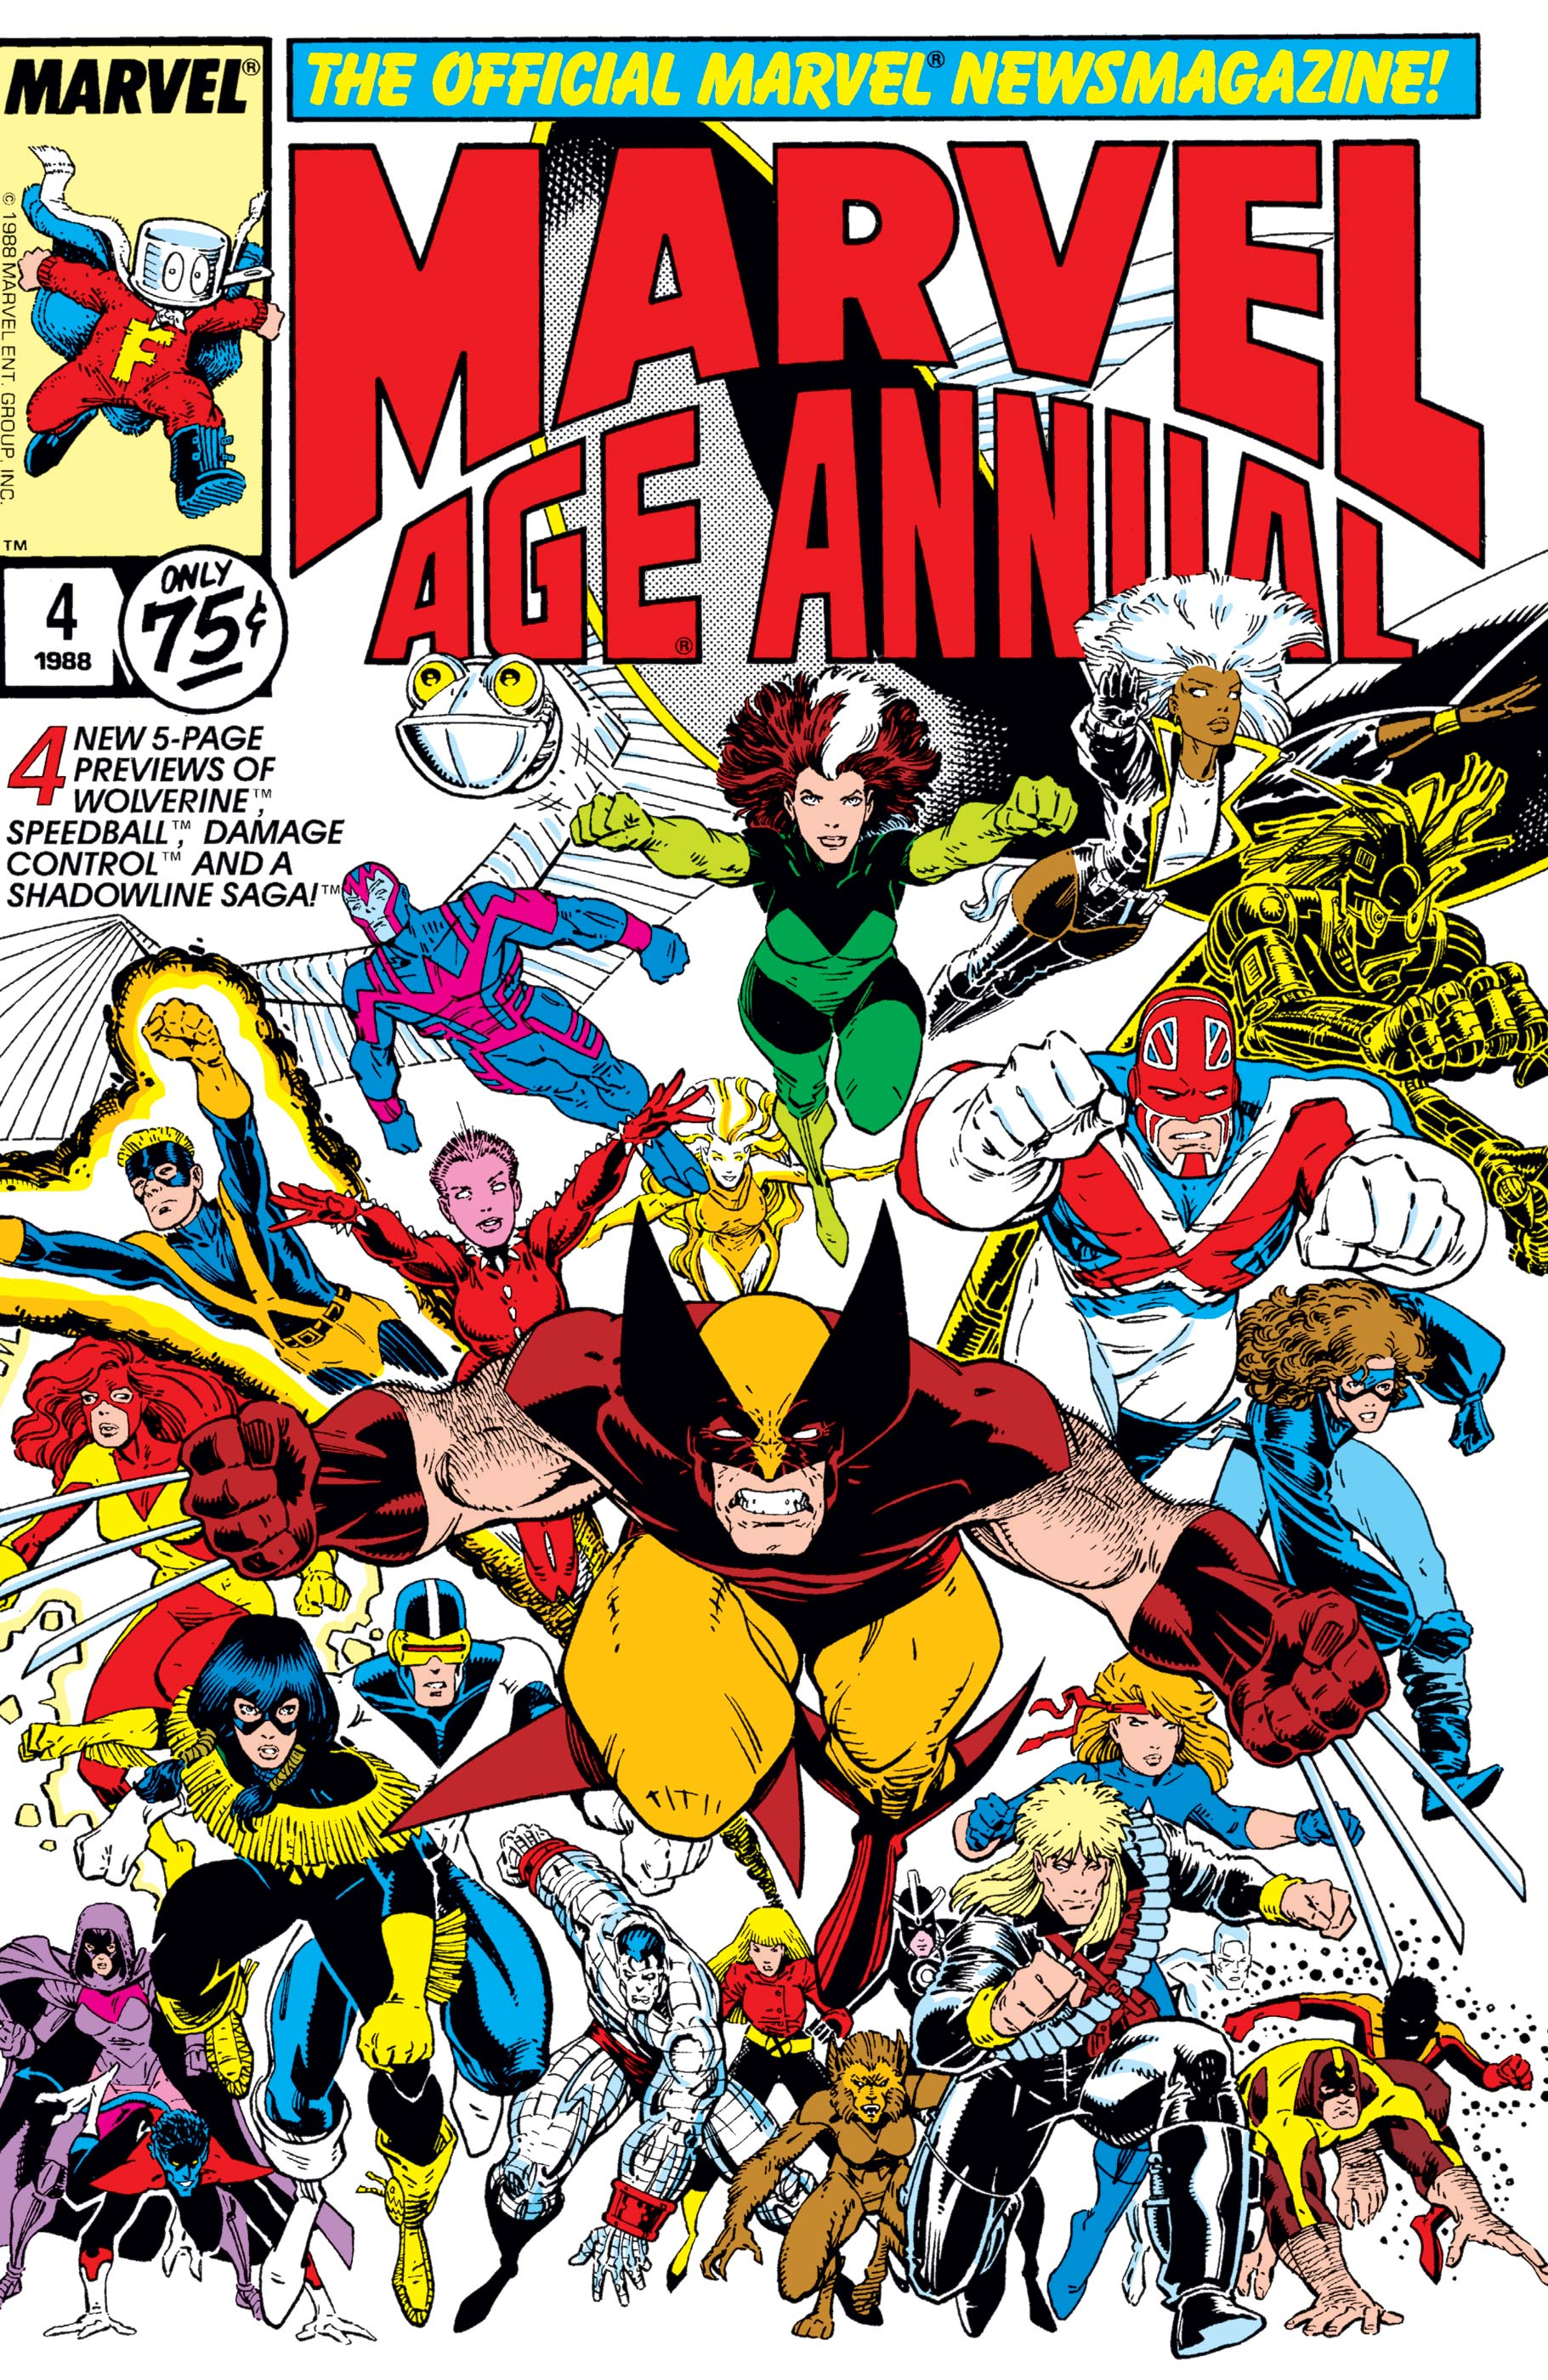 Marvel Age Annual (1985) #4